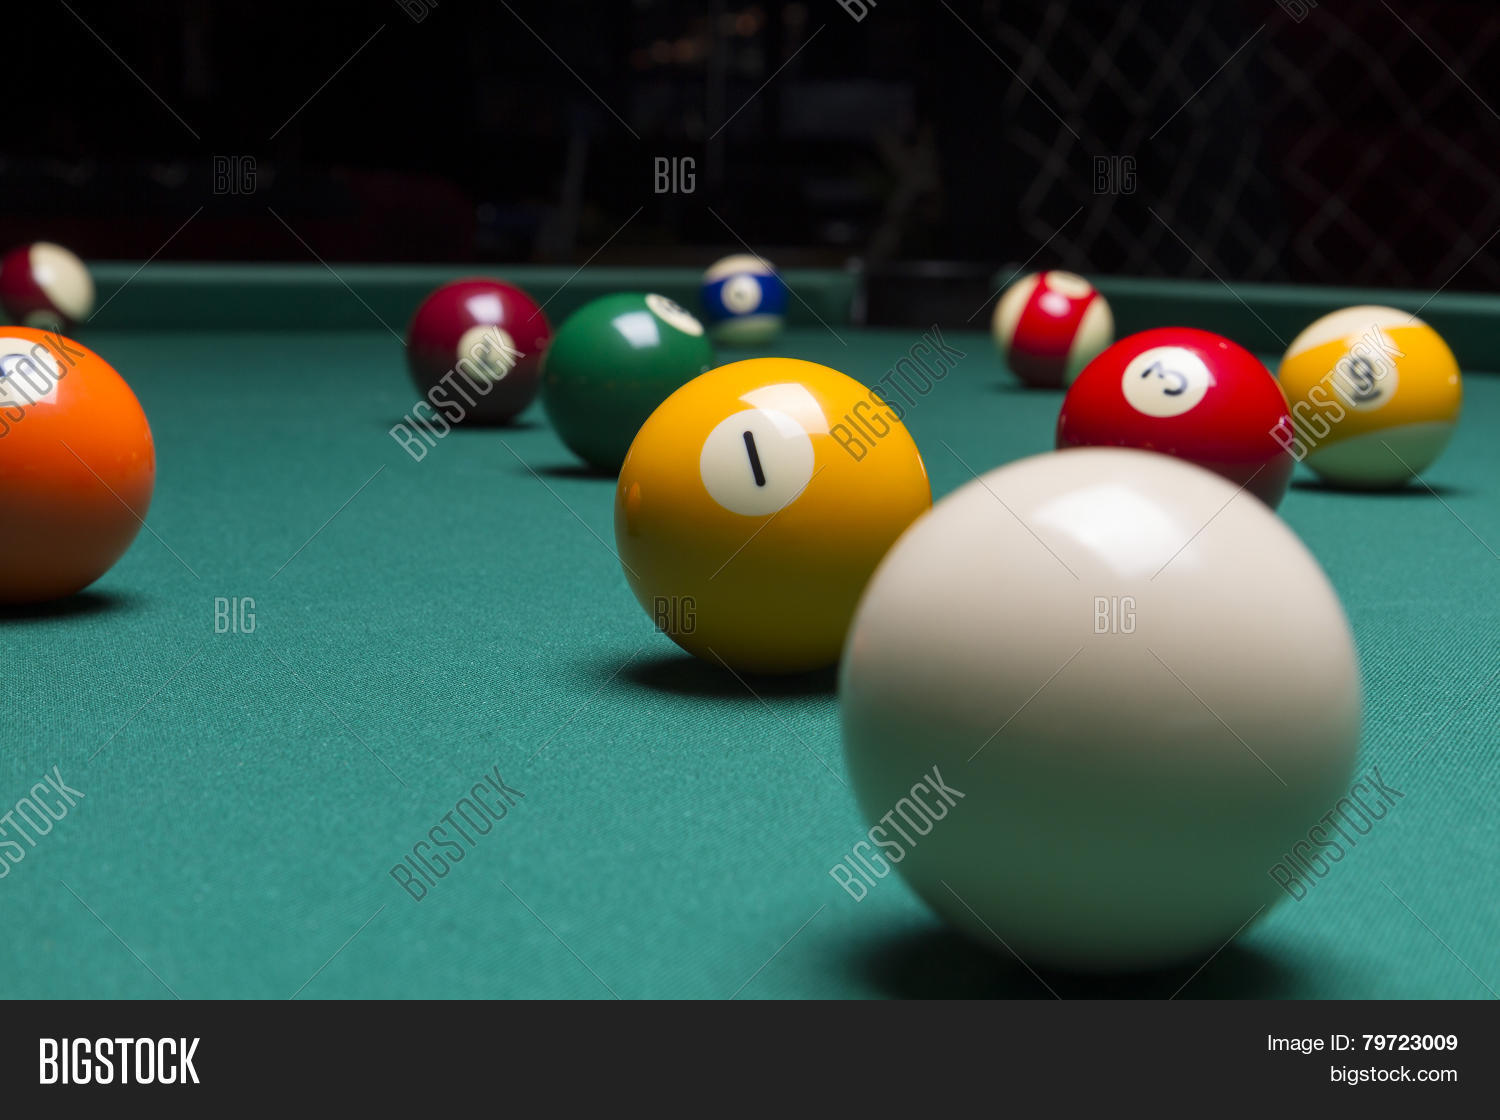 the ball focus royalty yellow in a pool table on stock balls image shutterstock free billiard photo